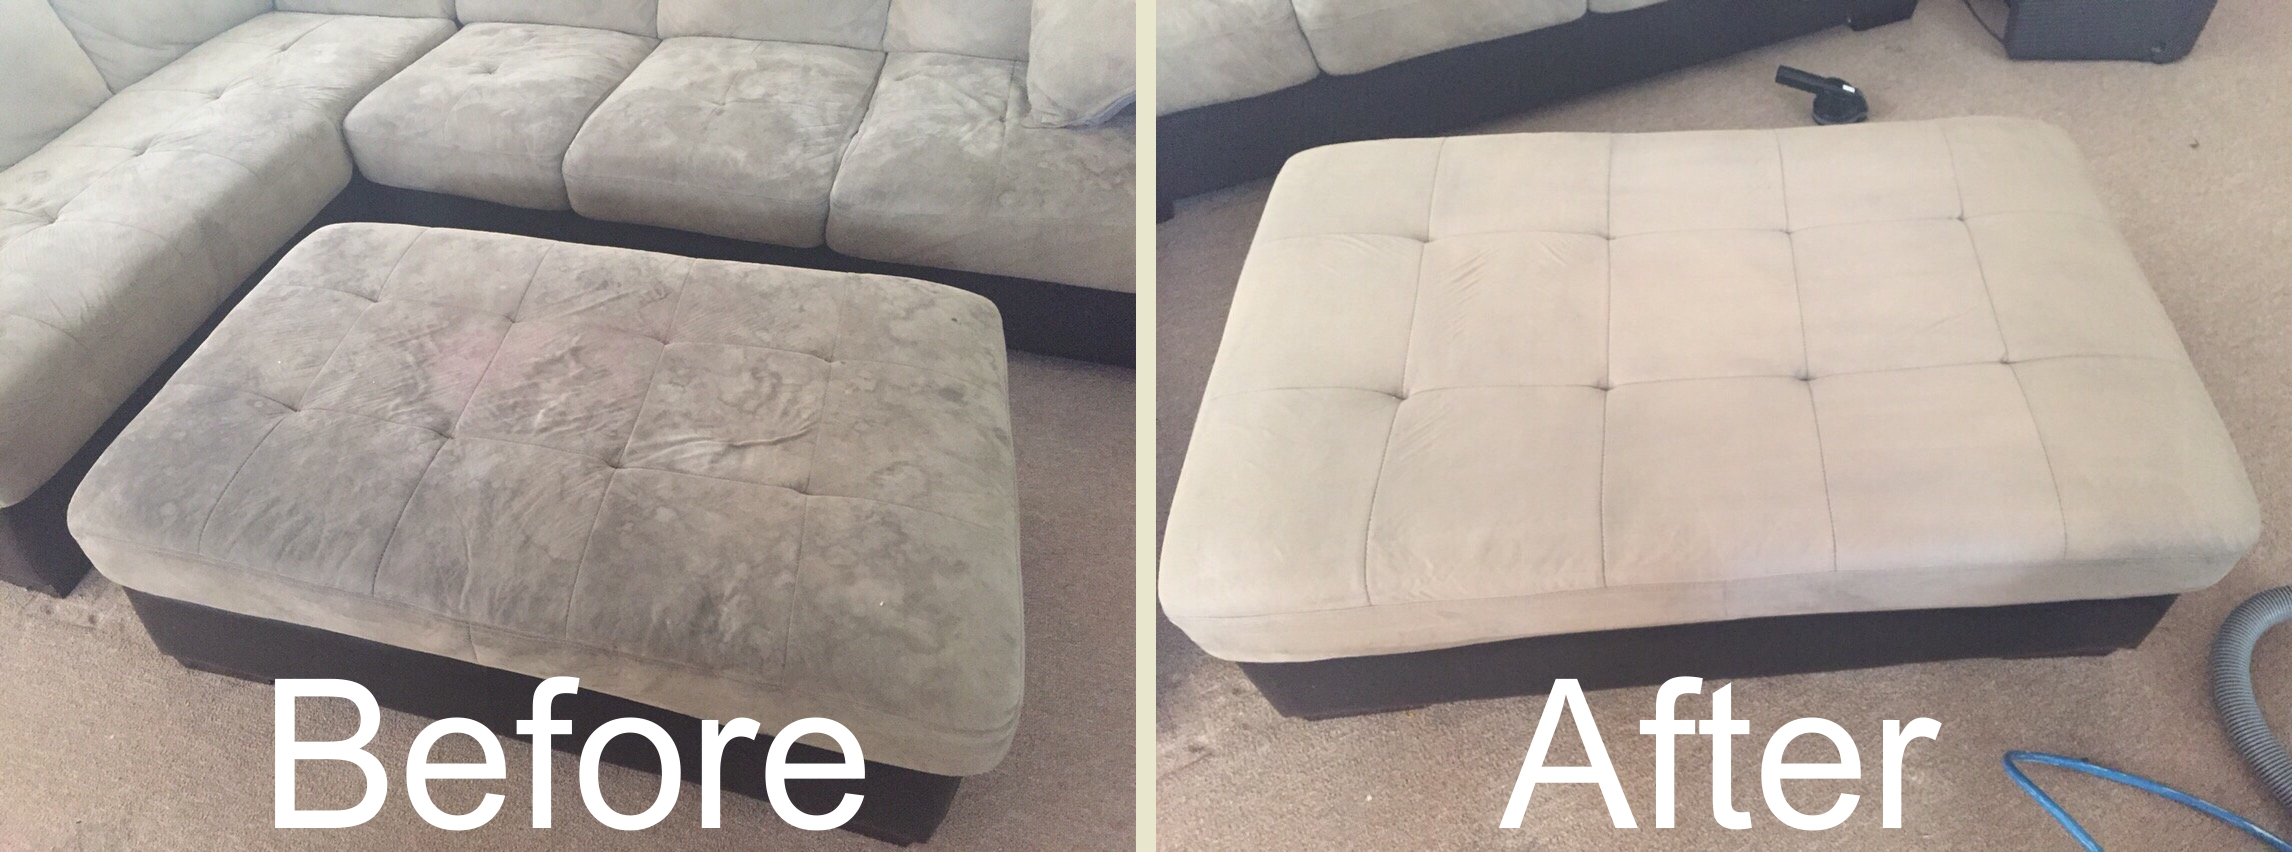 Upholstery Cleaning Chicago Sofa amp Love Seat 9895